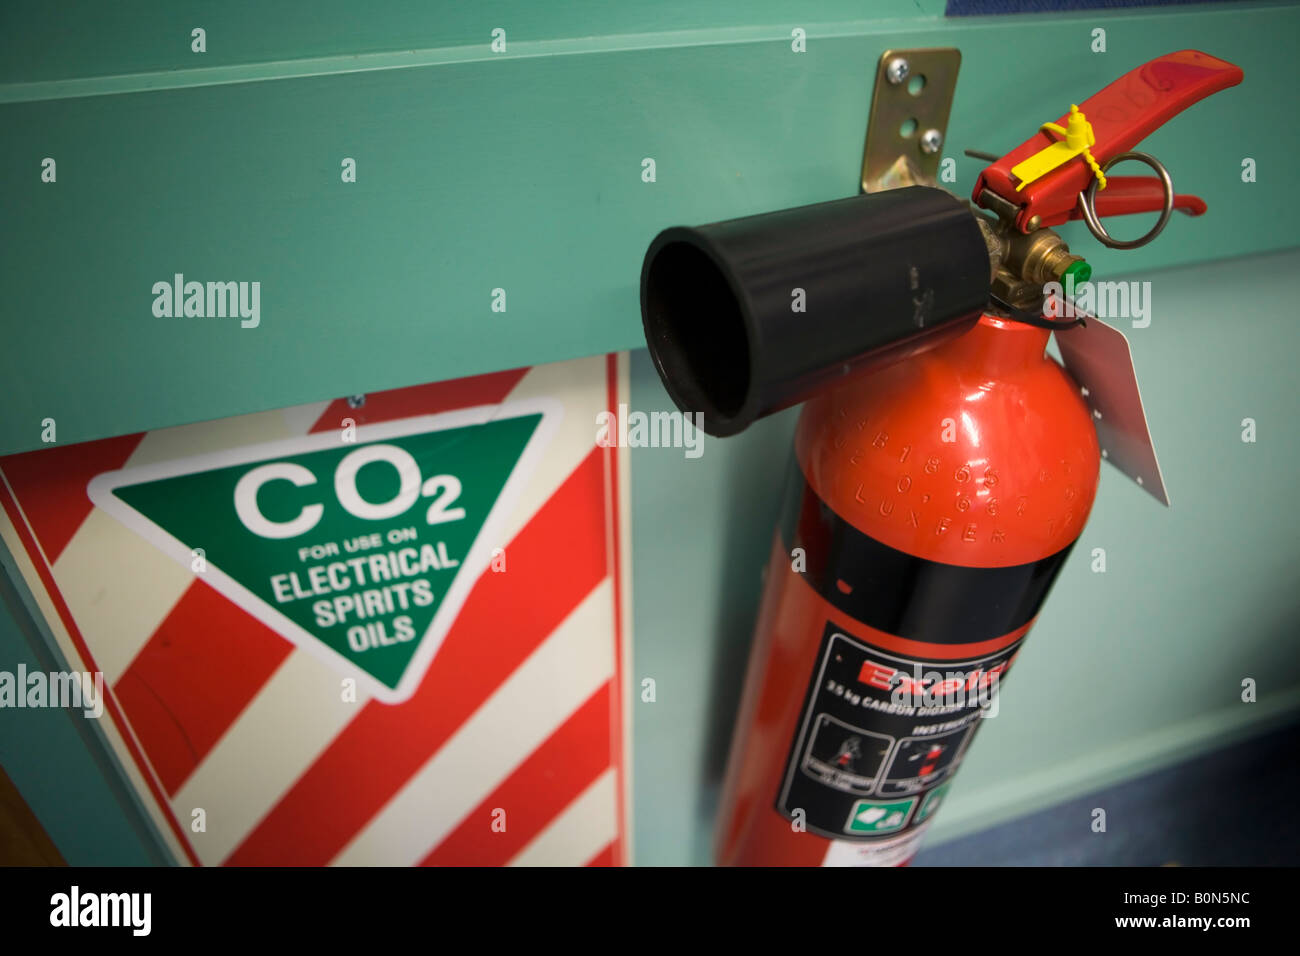 Carbon Dioxide fire extinguisher for electrical fires school science laboratory New Zealand - Stock Image